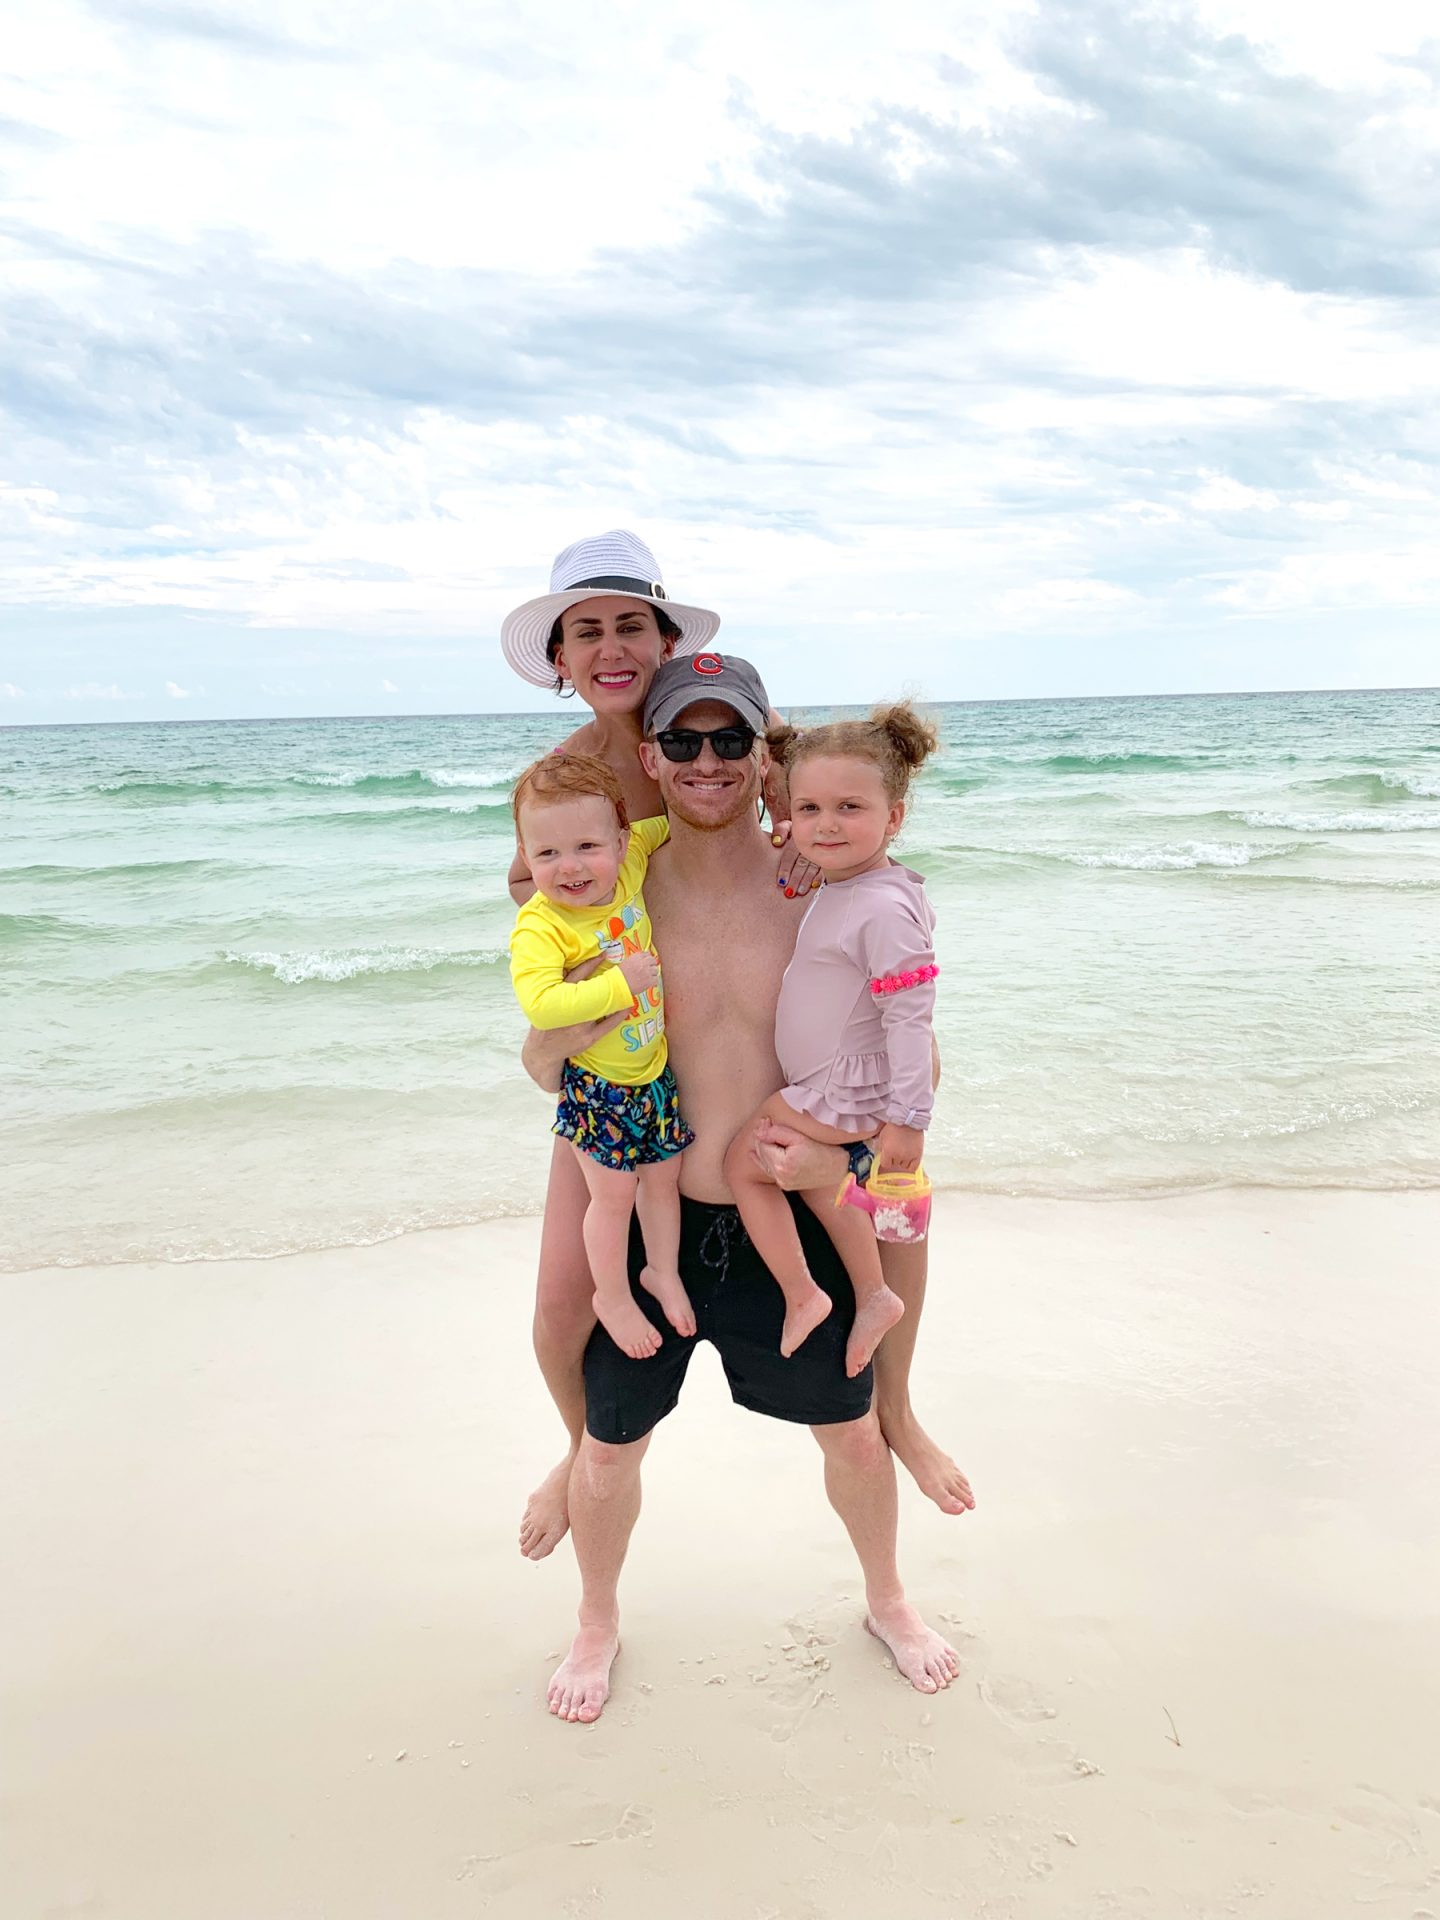 Traveling With Kids: An Attitude Adjustment